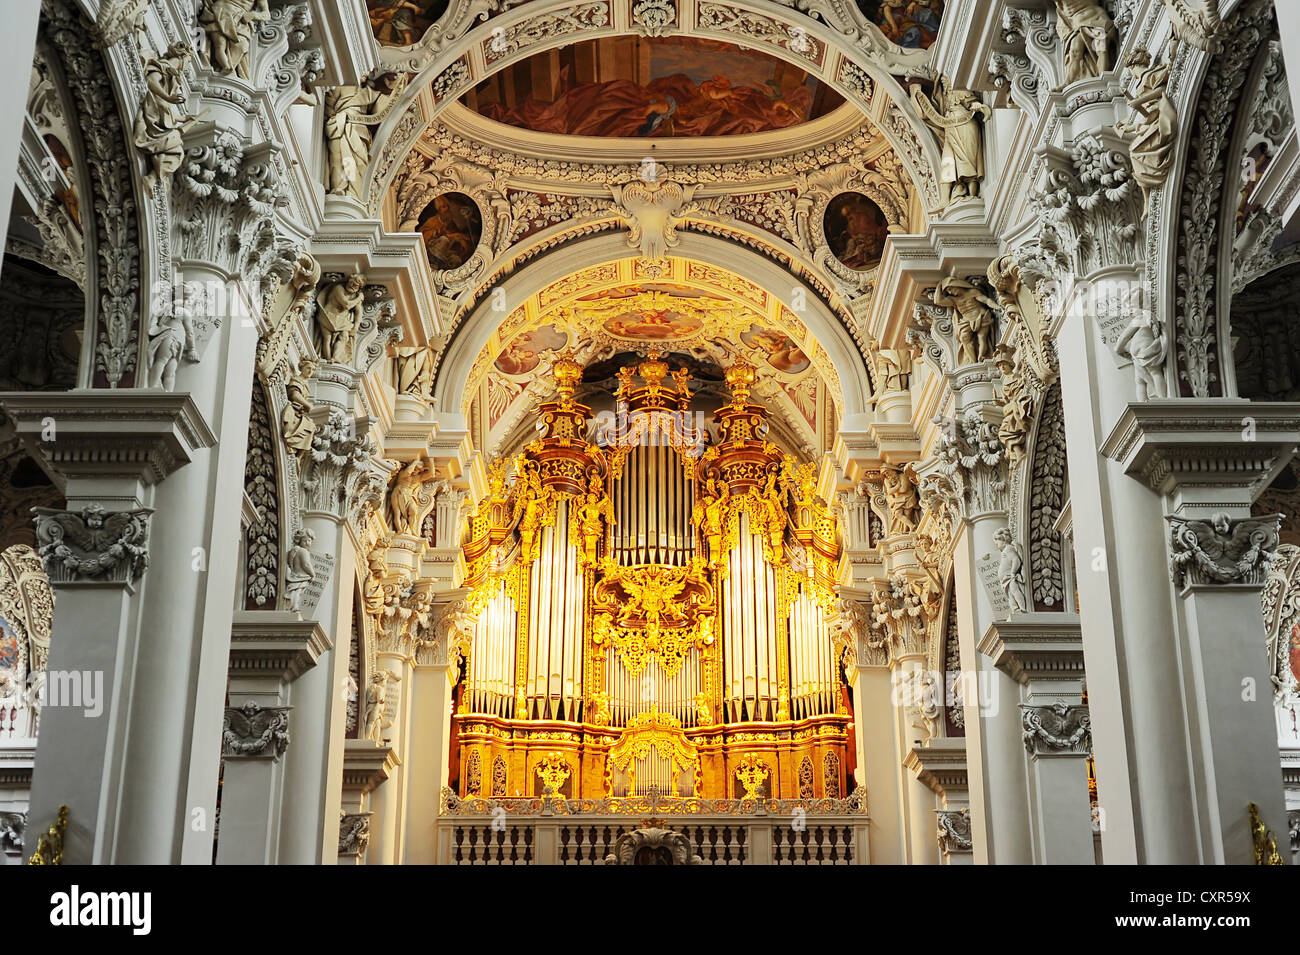 Organ at St. Stephan's Cathedral, Passau. - Stock Image